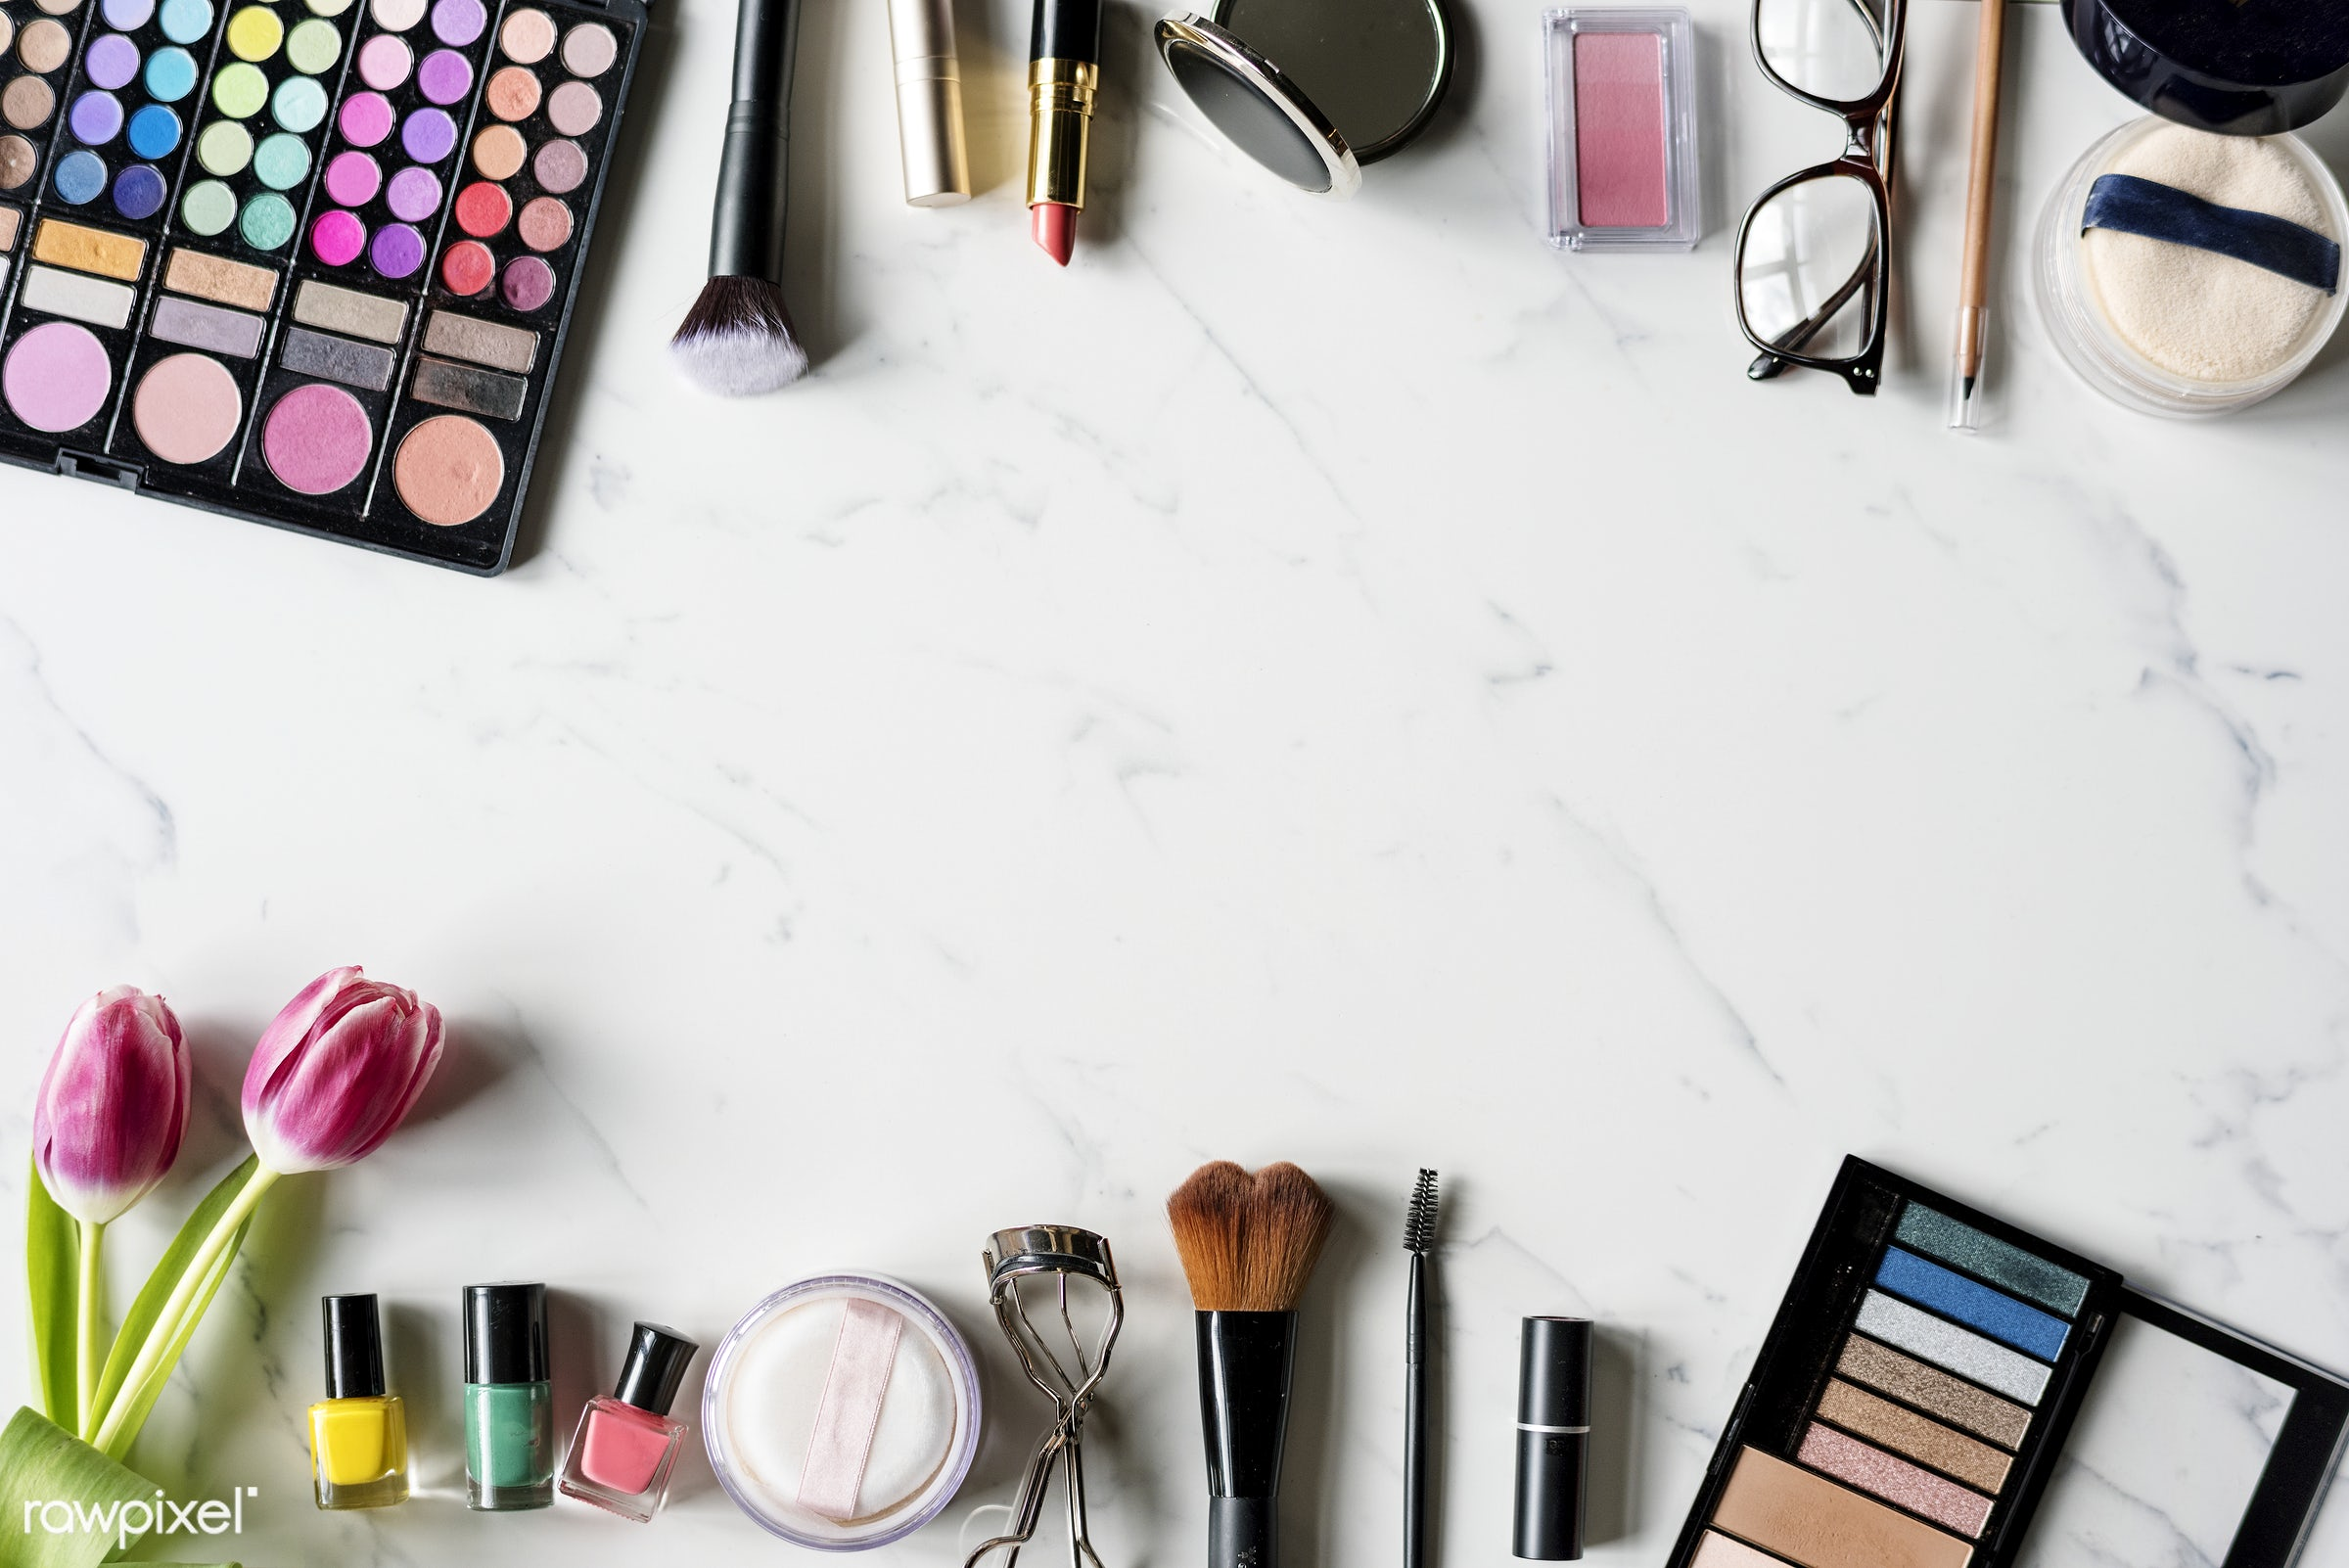 Make up design space - makeup, cosmetic, lipstick, fashion, attach, attached, beauty, blush, brushes, care, collection,...